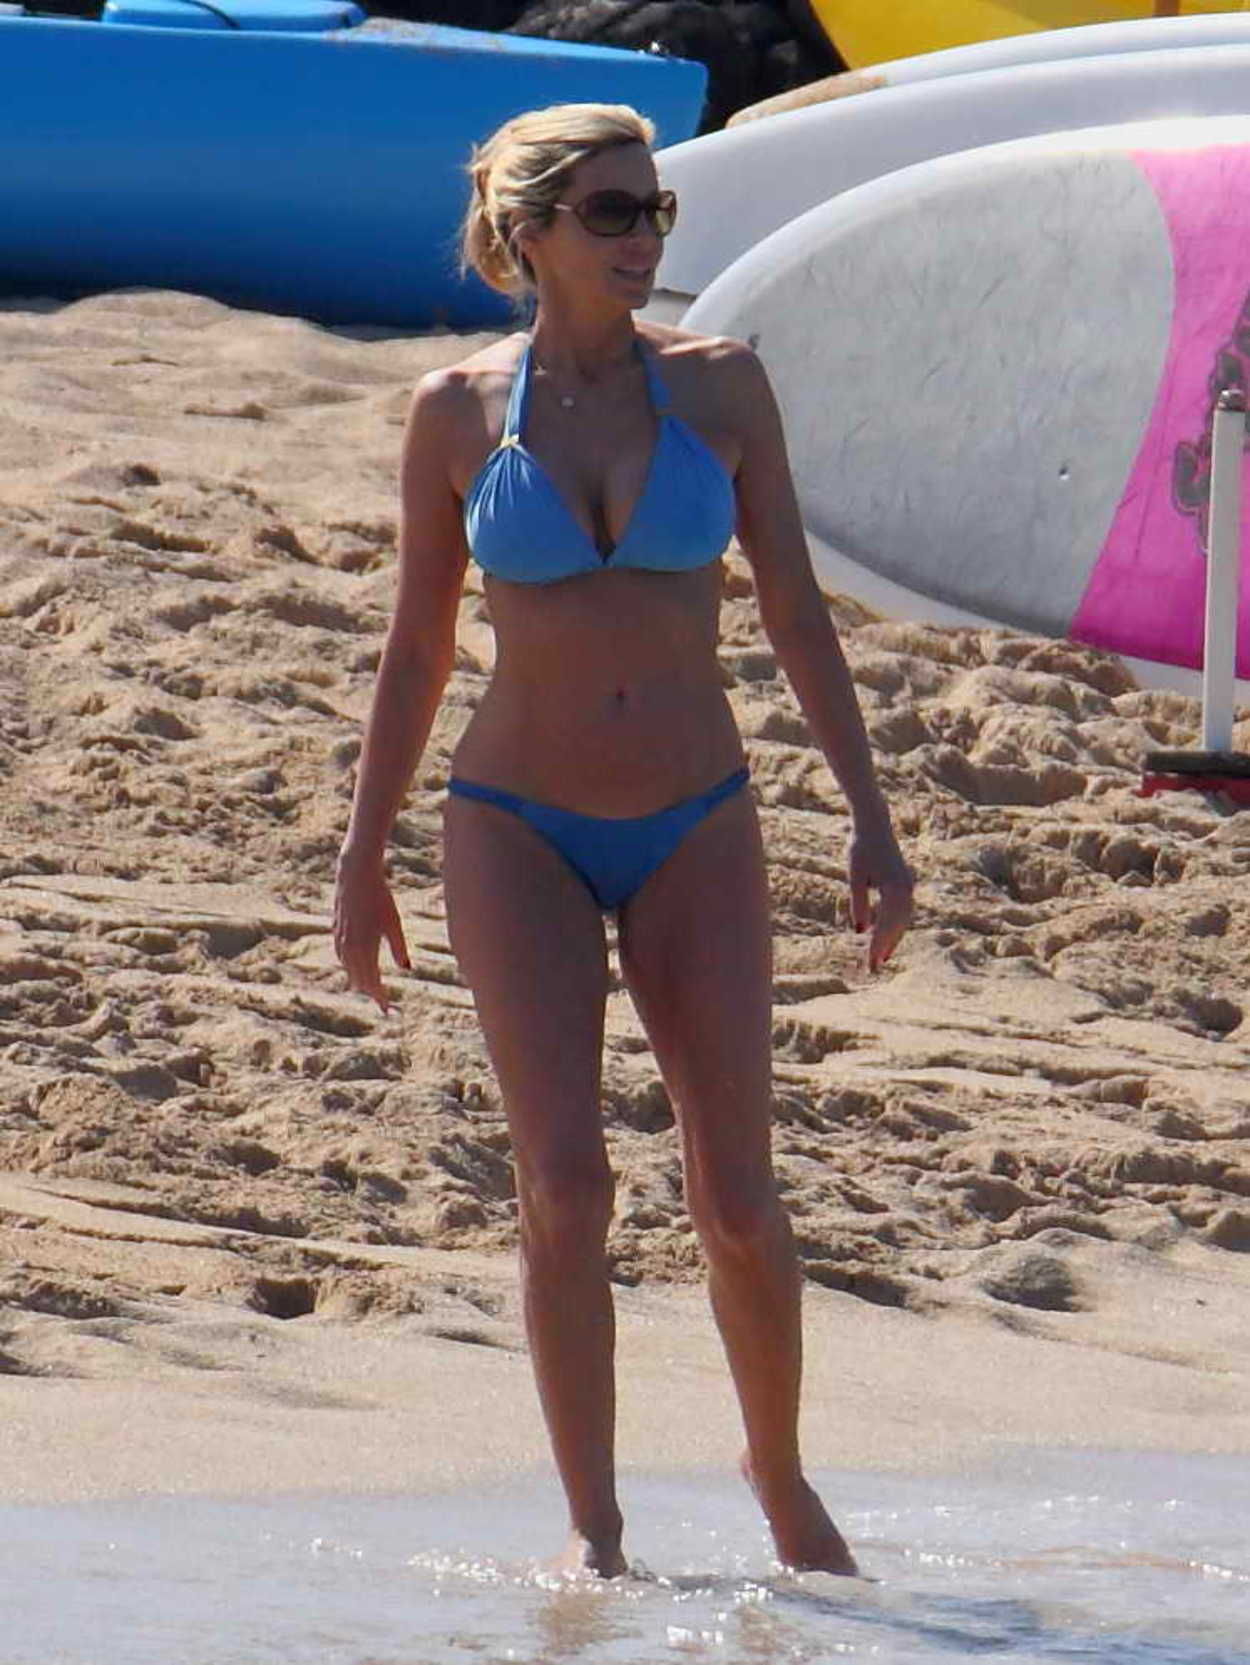 Opinion, real housewives camille grammer bikini